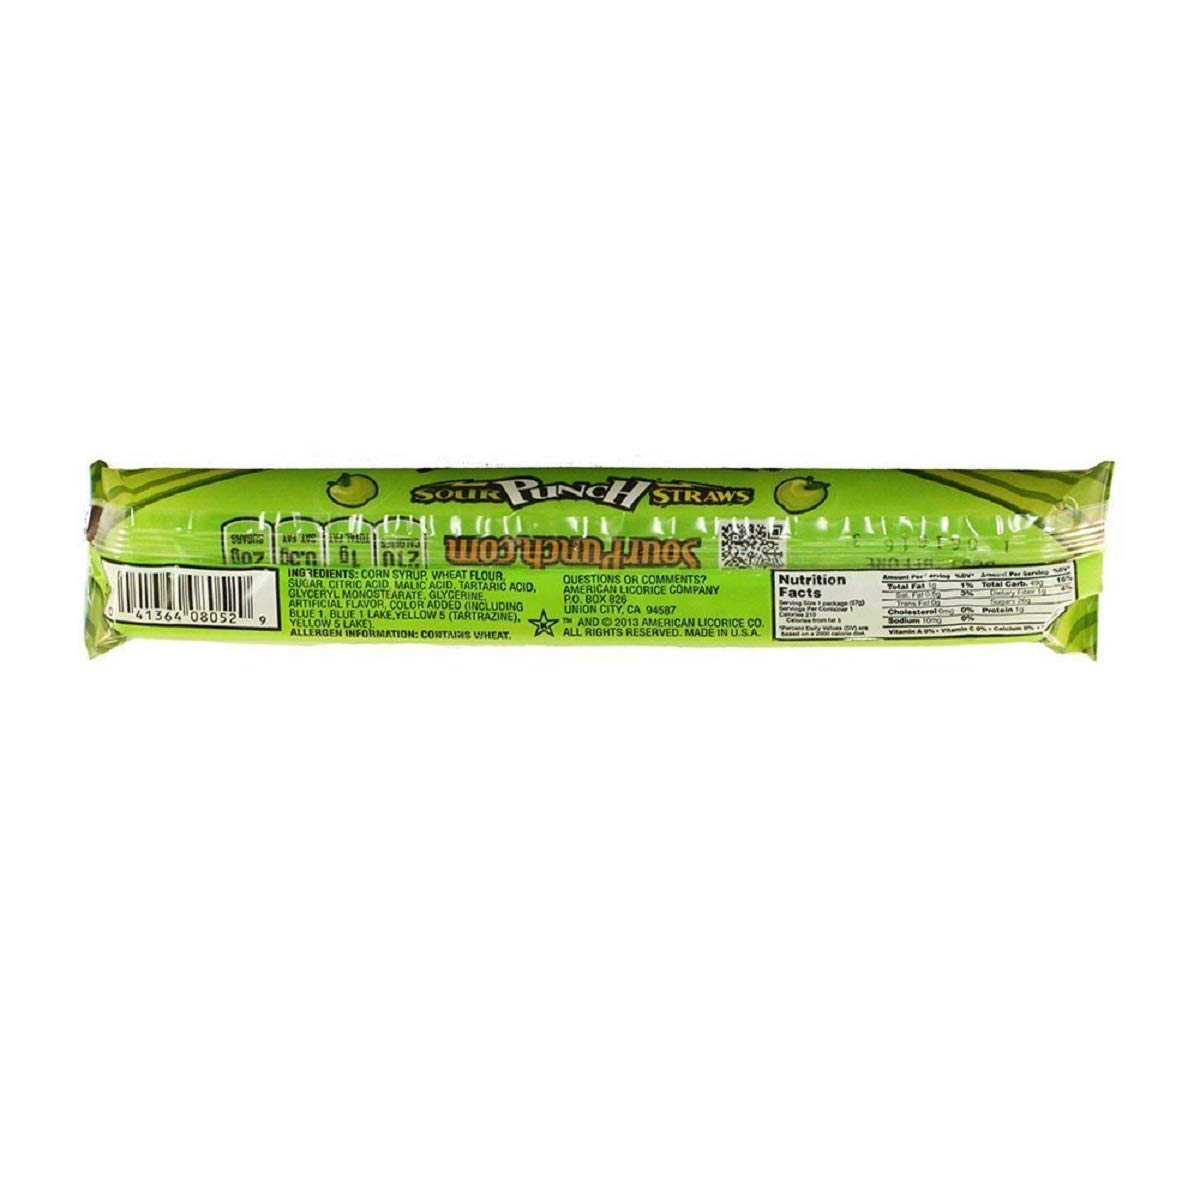 Sour Punch Straws, Sweet & Sour Apple Fruit Flavor, Soft Chewy Candy, 2oz Tray (24 Pack) by Sour Punch (Image #3)